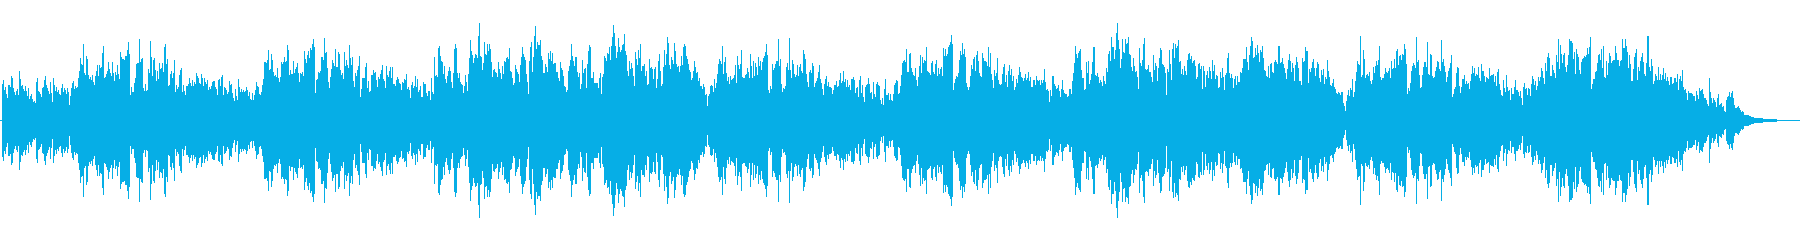 For travel programs, nature, outdoors, camping, etc.'s reproduced waveform